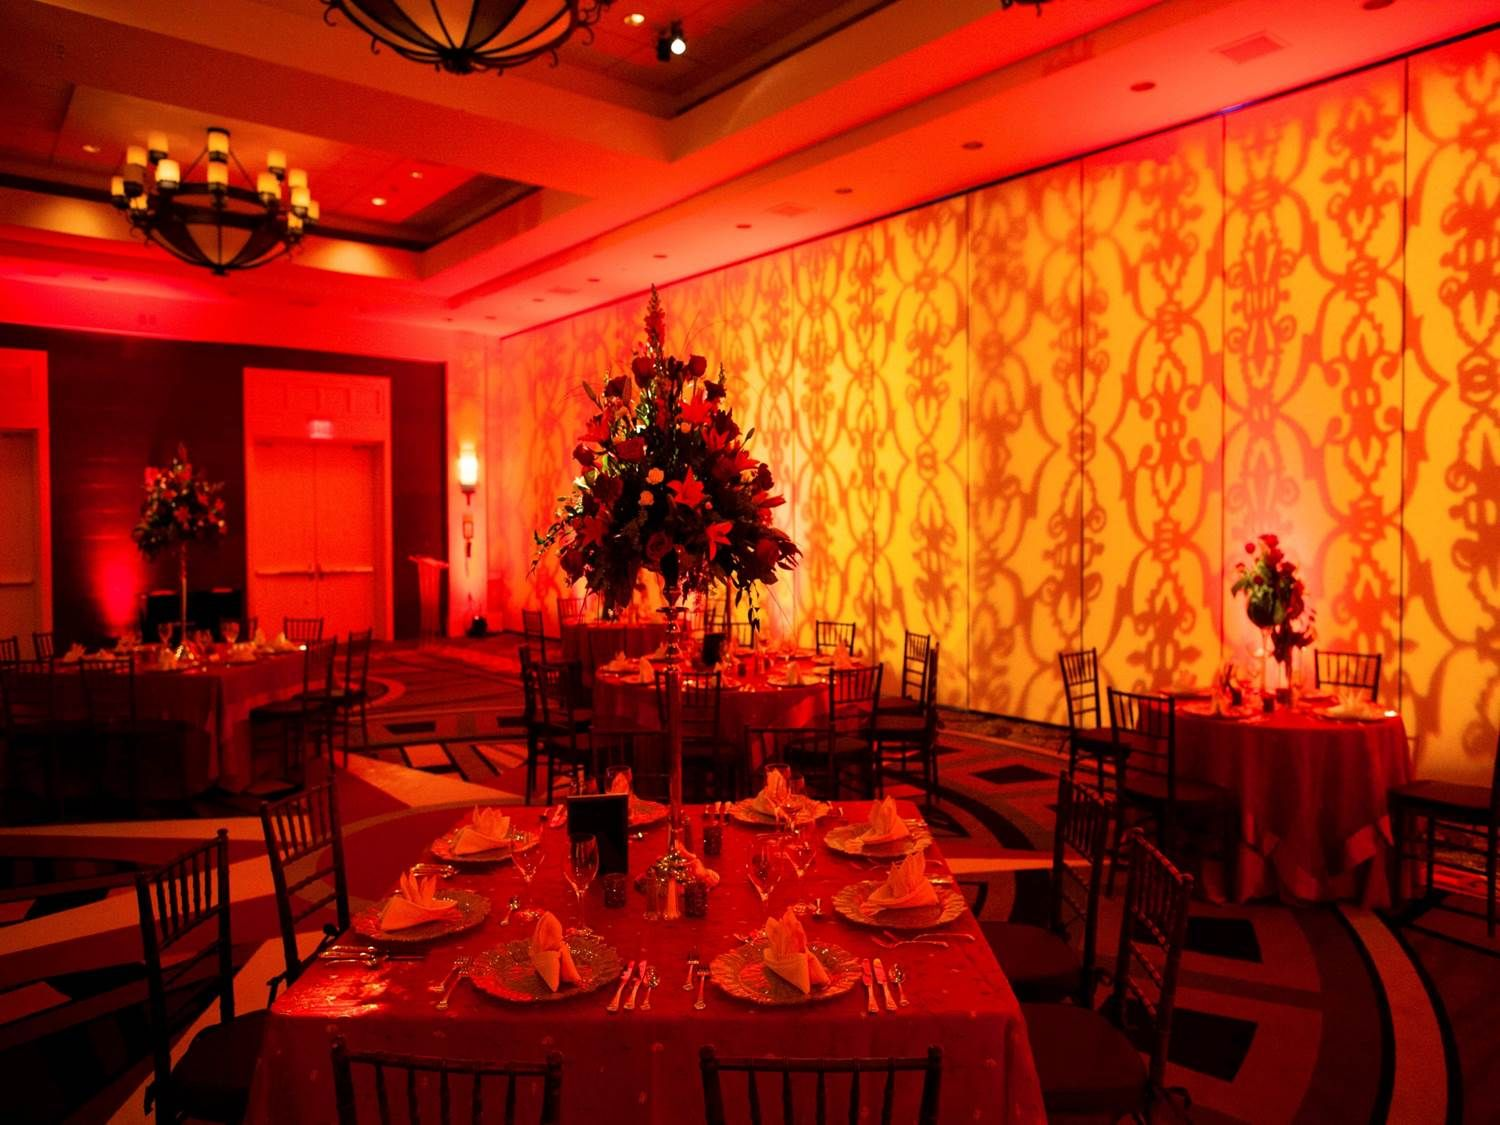 Fiery Colors At This Beach Wedding Taken At The Hilton Virginia